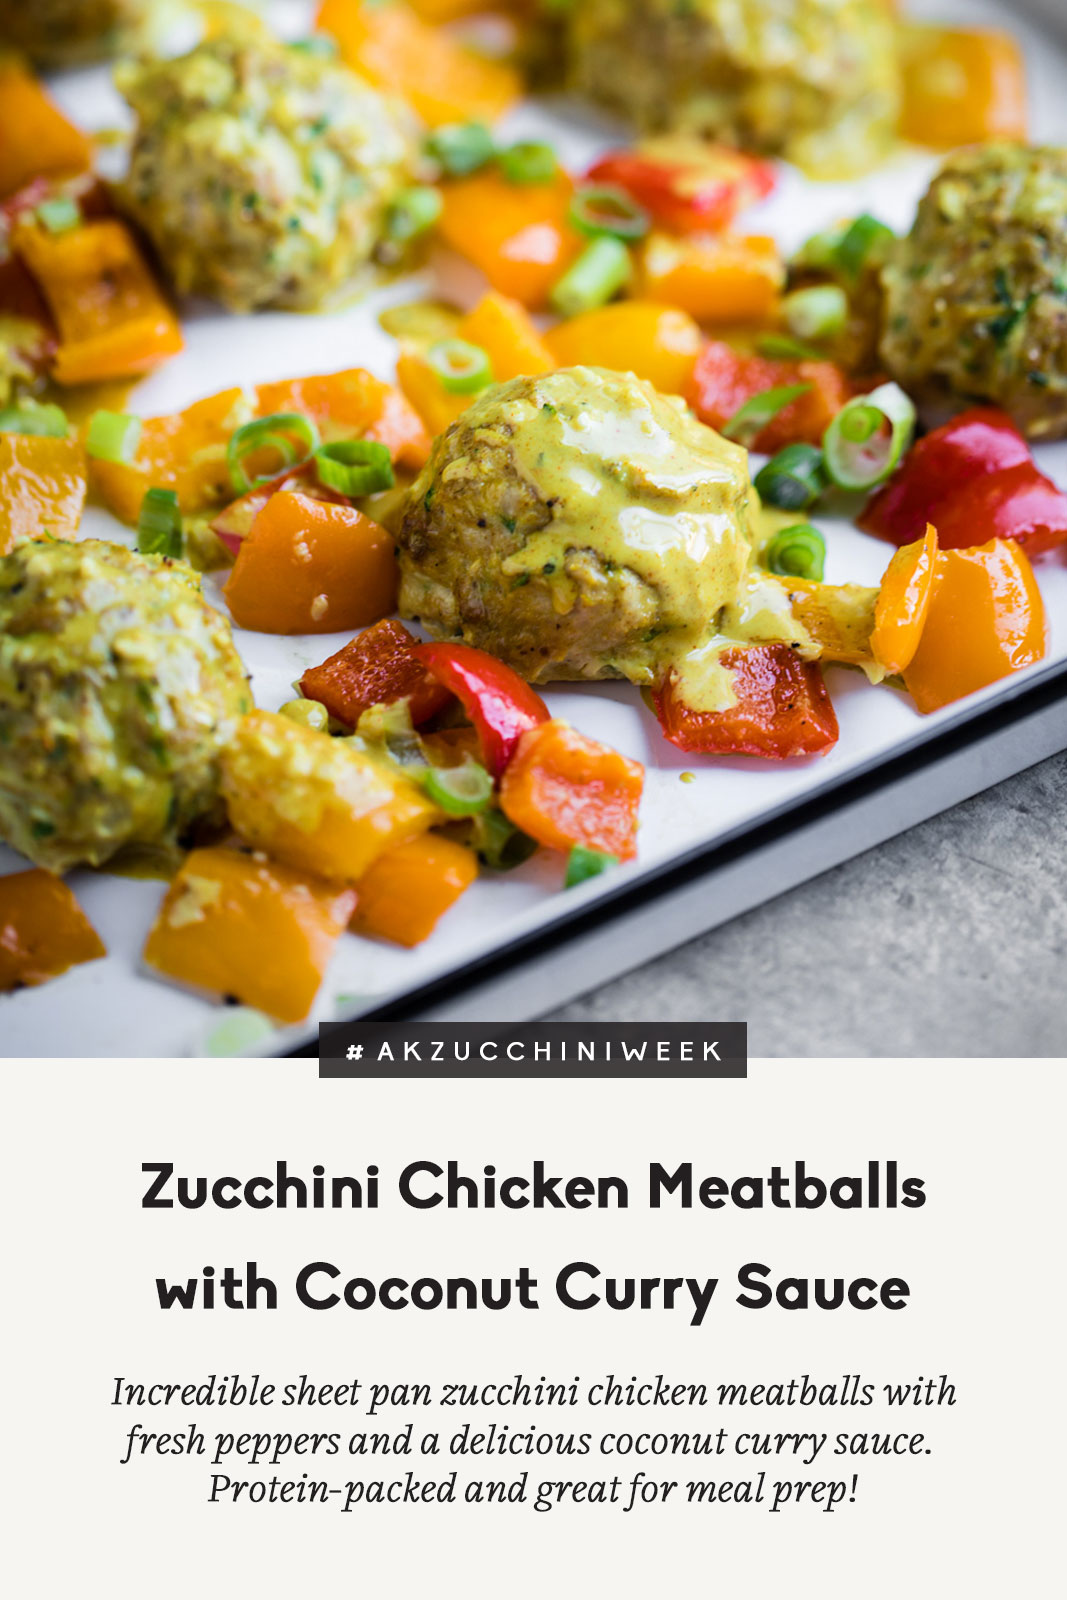 Sheet pan zucchini chicken meatballs baked with gorgeous bell peppers and drizzled with a flavorful coconut curry sauce. This easy, delicious recipe is packed with protein and great for meal prep!